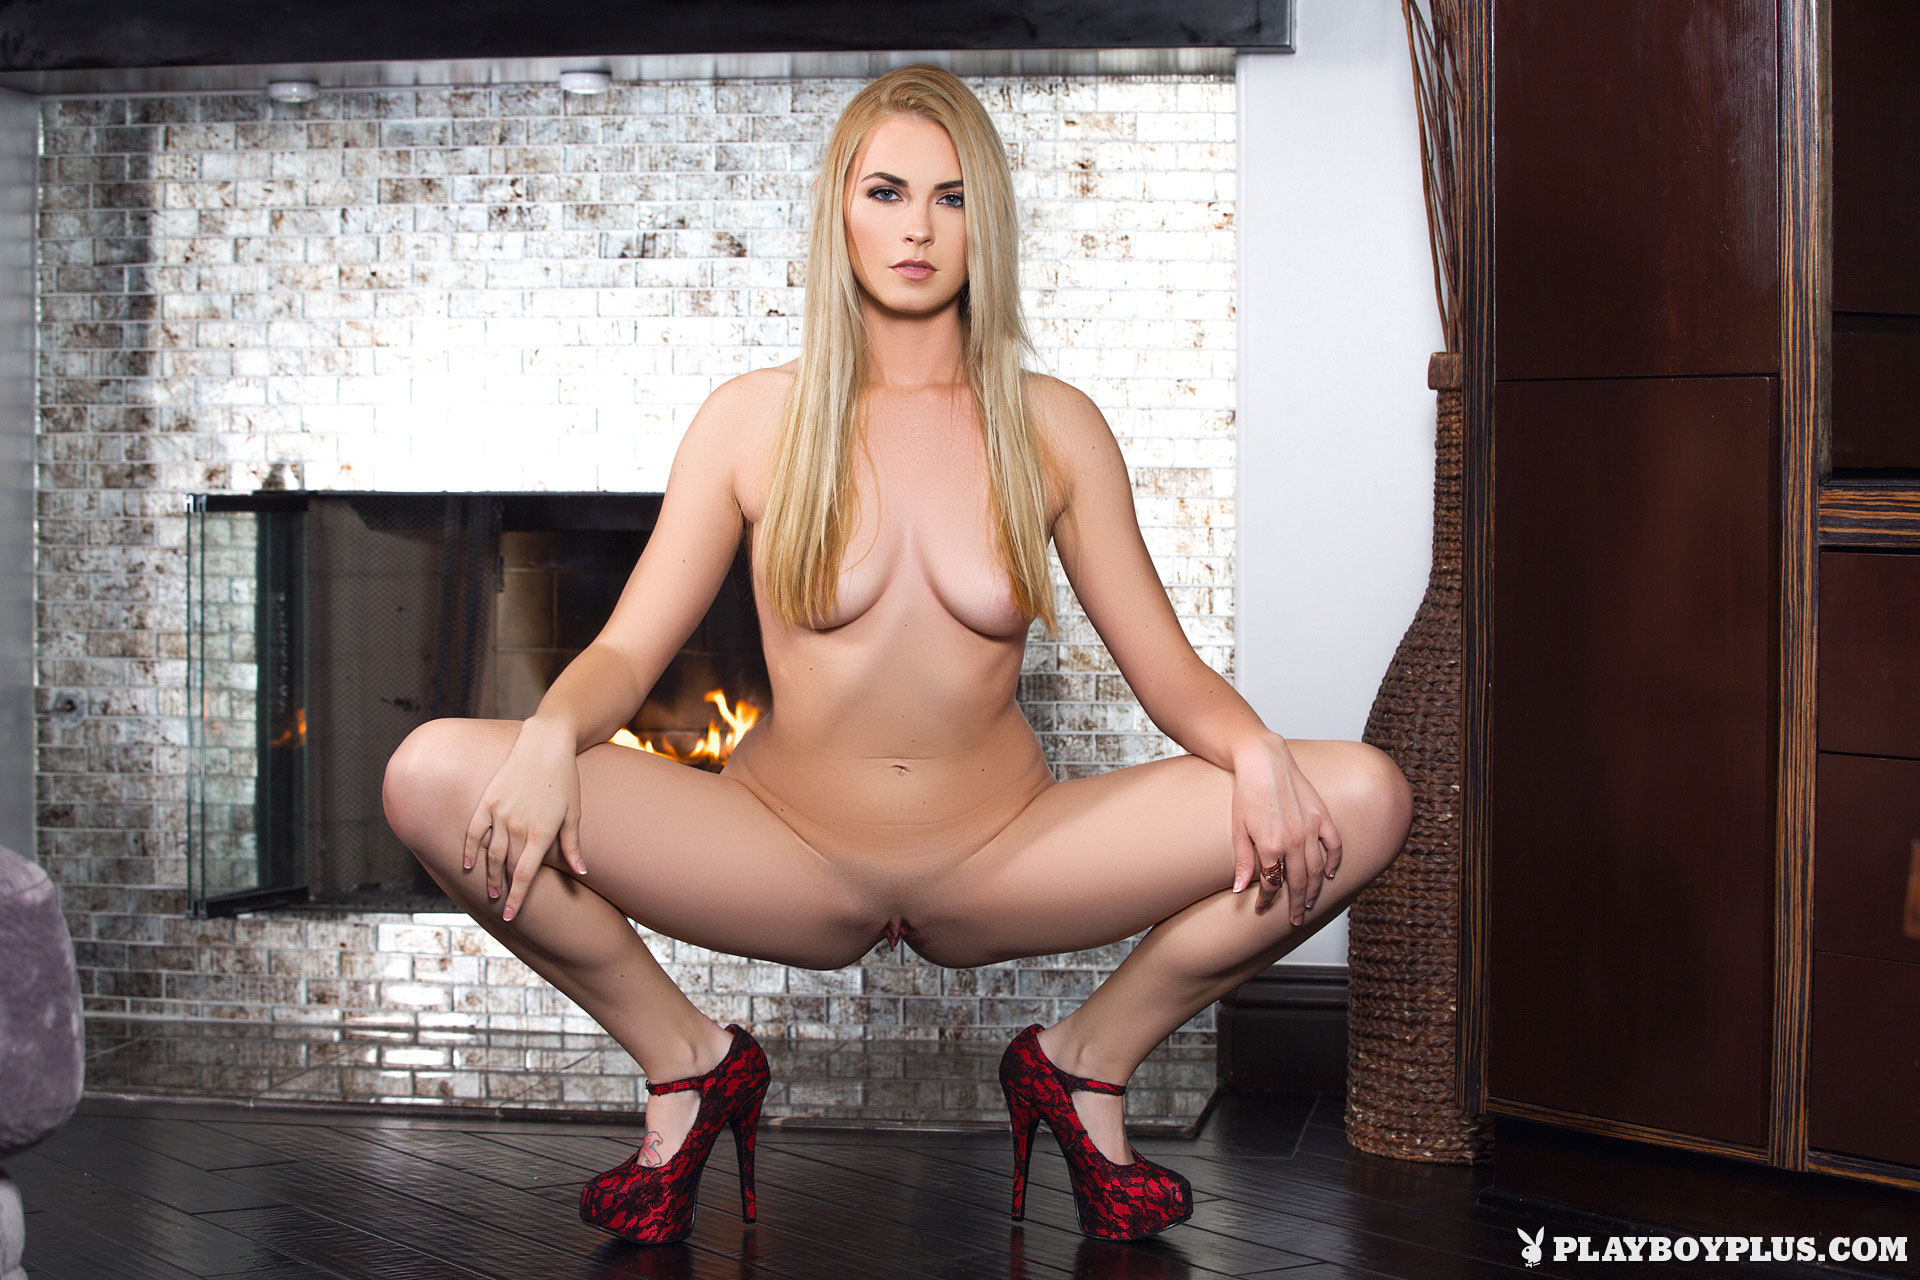 bailey-rayne-nude-fireplace-blonde-playboy-20